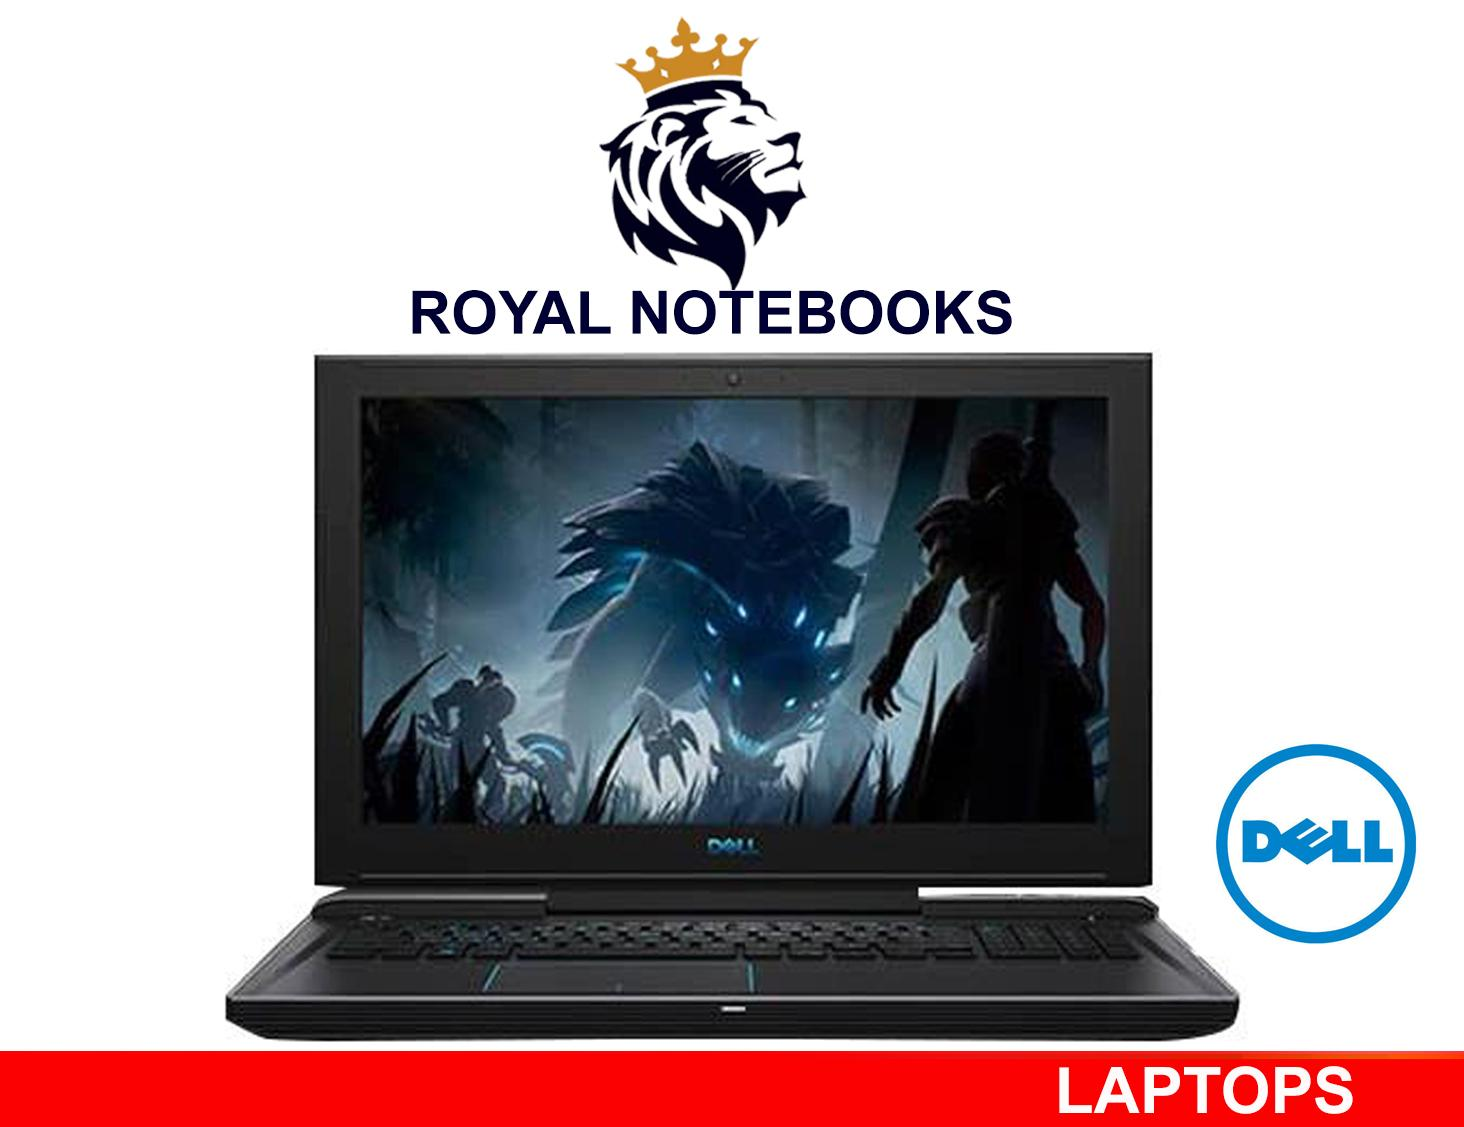 Latest Arrival - DELL INSPRION G7 15 - 7588 Laptop